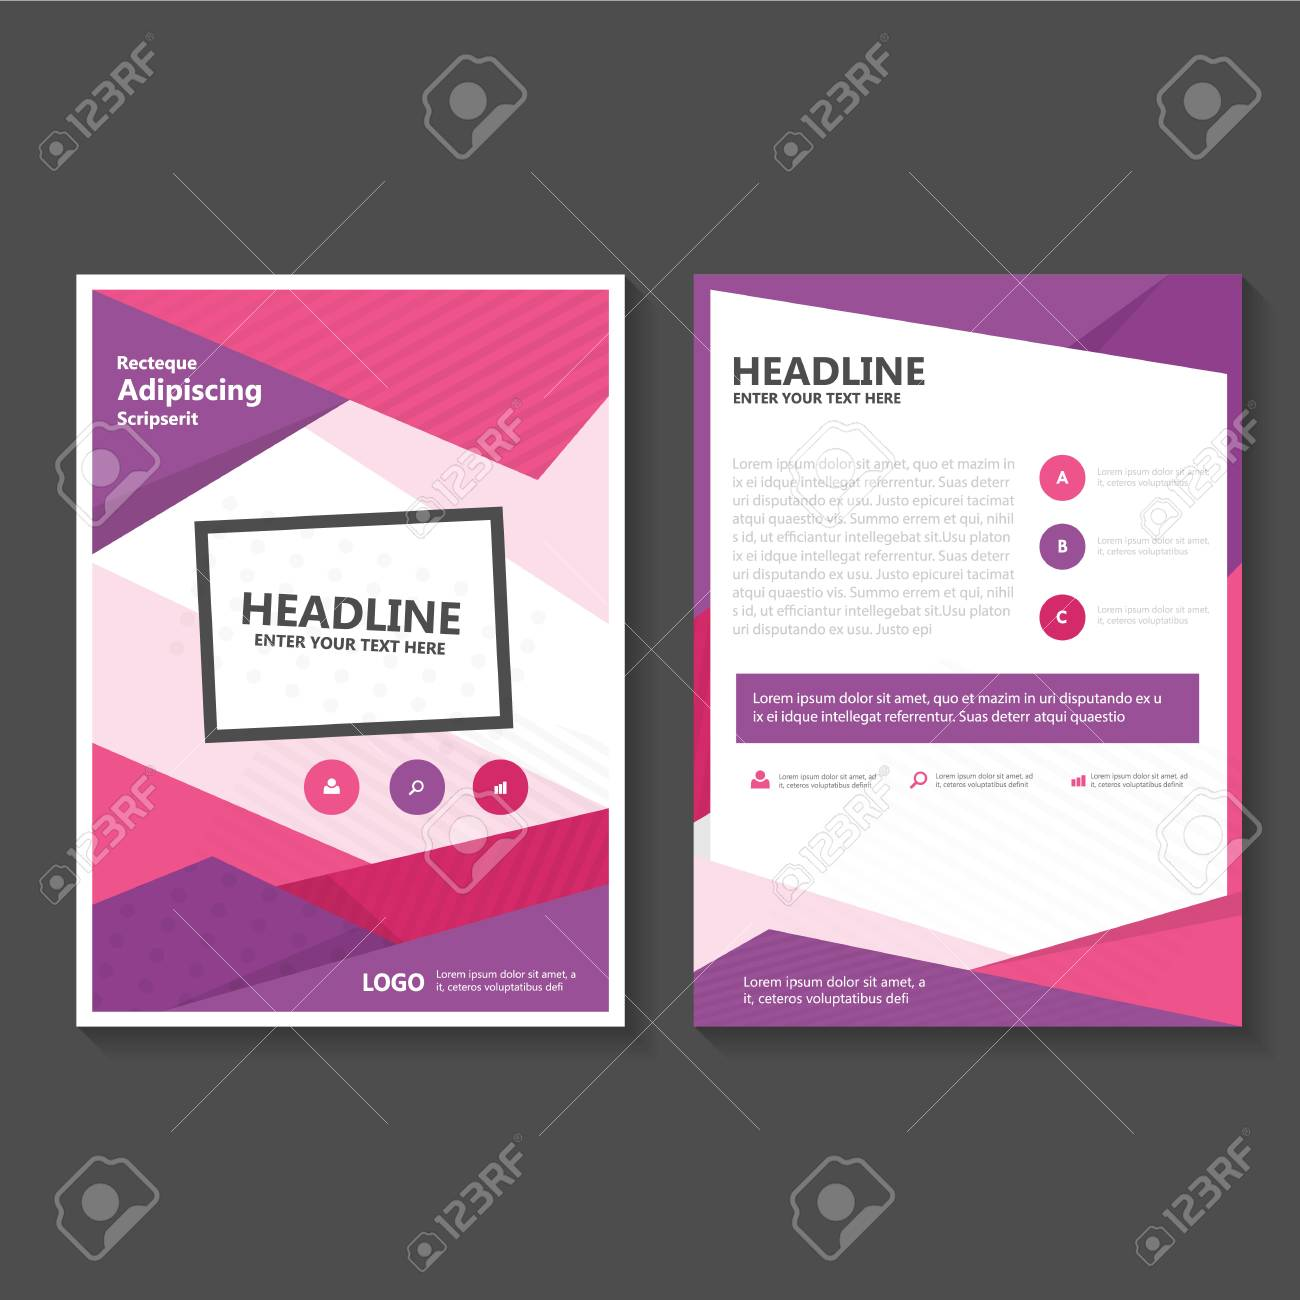 Rose Pourpre D Affaires Brochure Flyer Conception De Modele Conception Couverture Du Livre De Mise En Page Presentation Resume Rose Pourpre Rapport